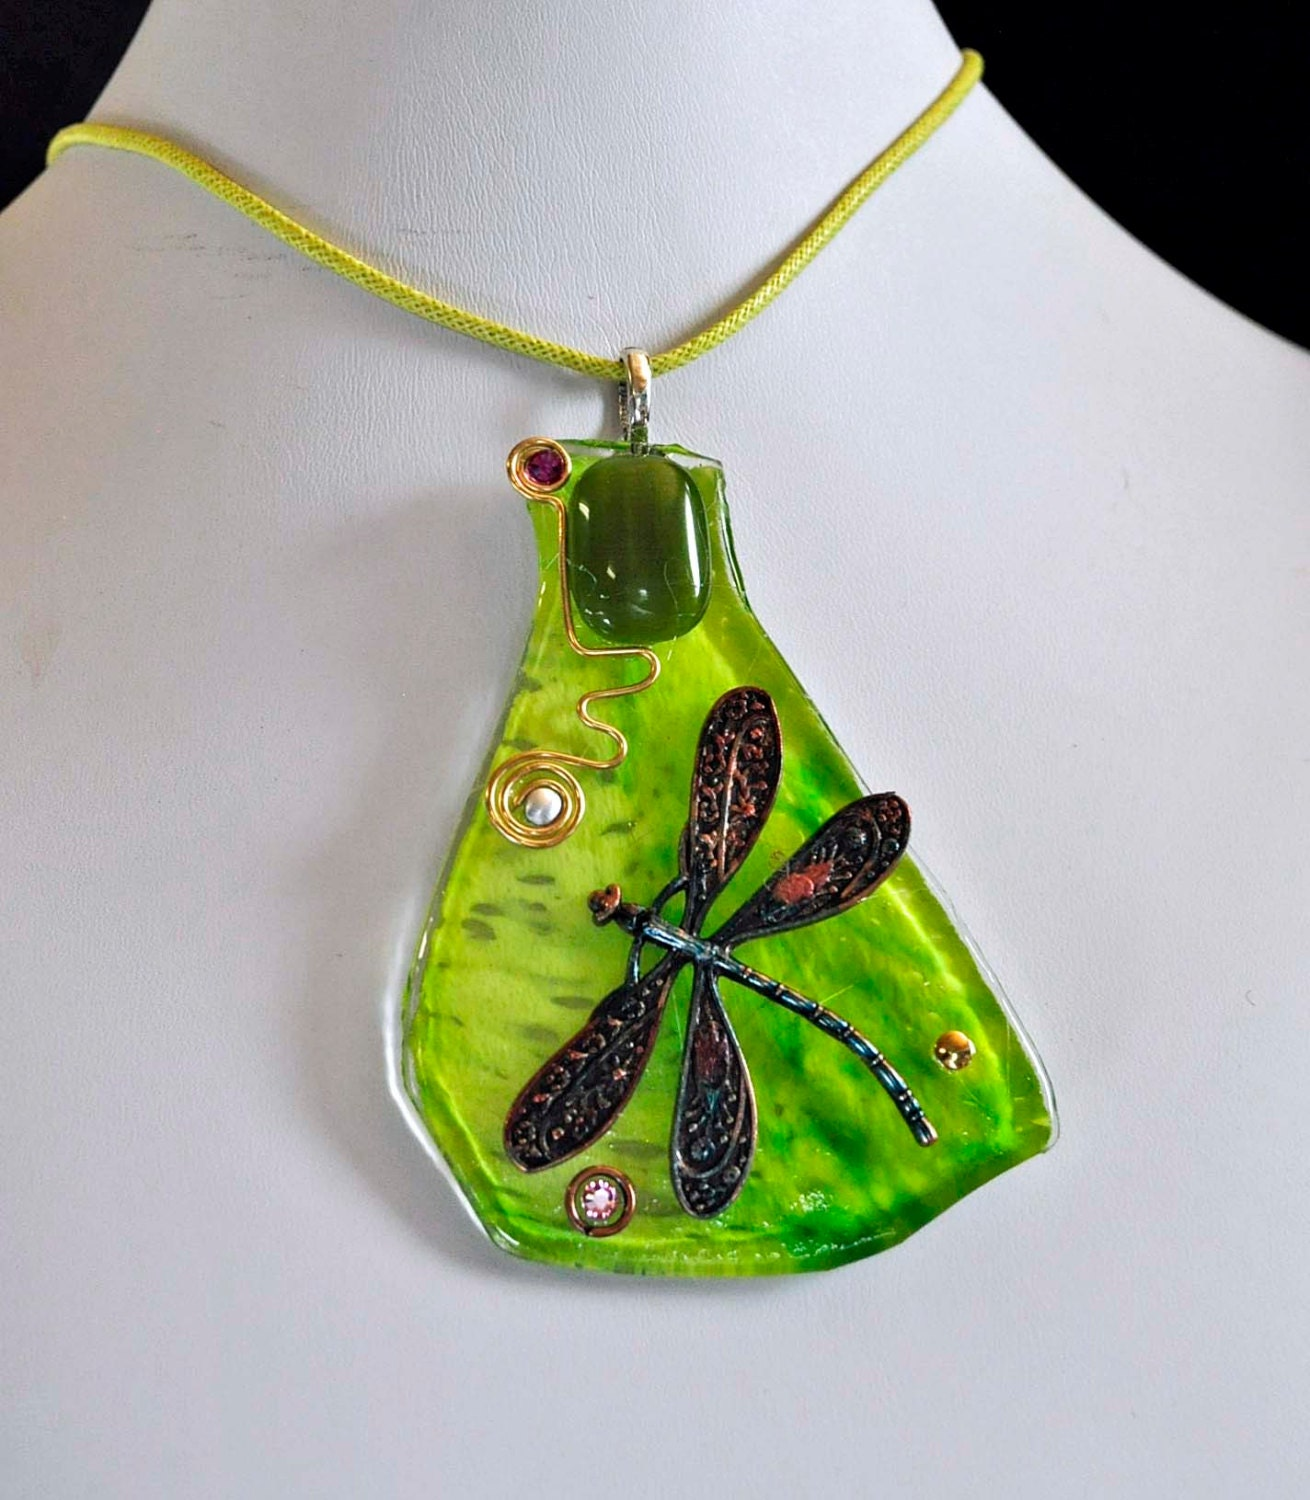 Dragonfly Lime Green Recycled Slumped Art Glass Pendant Etsy Circuit Board Jewelry Earrings Steampunk Vintage Wire Wrapped Necklace Eco Friendly One Of A Kind Artist Made In Michigan